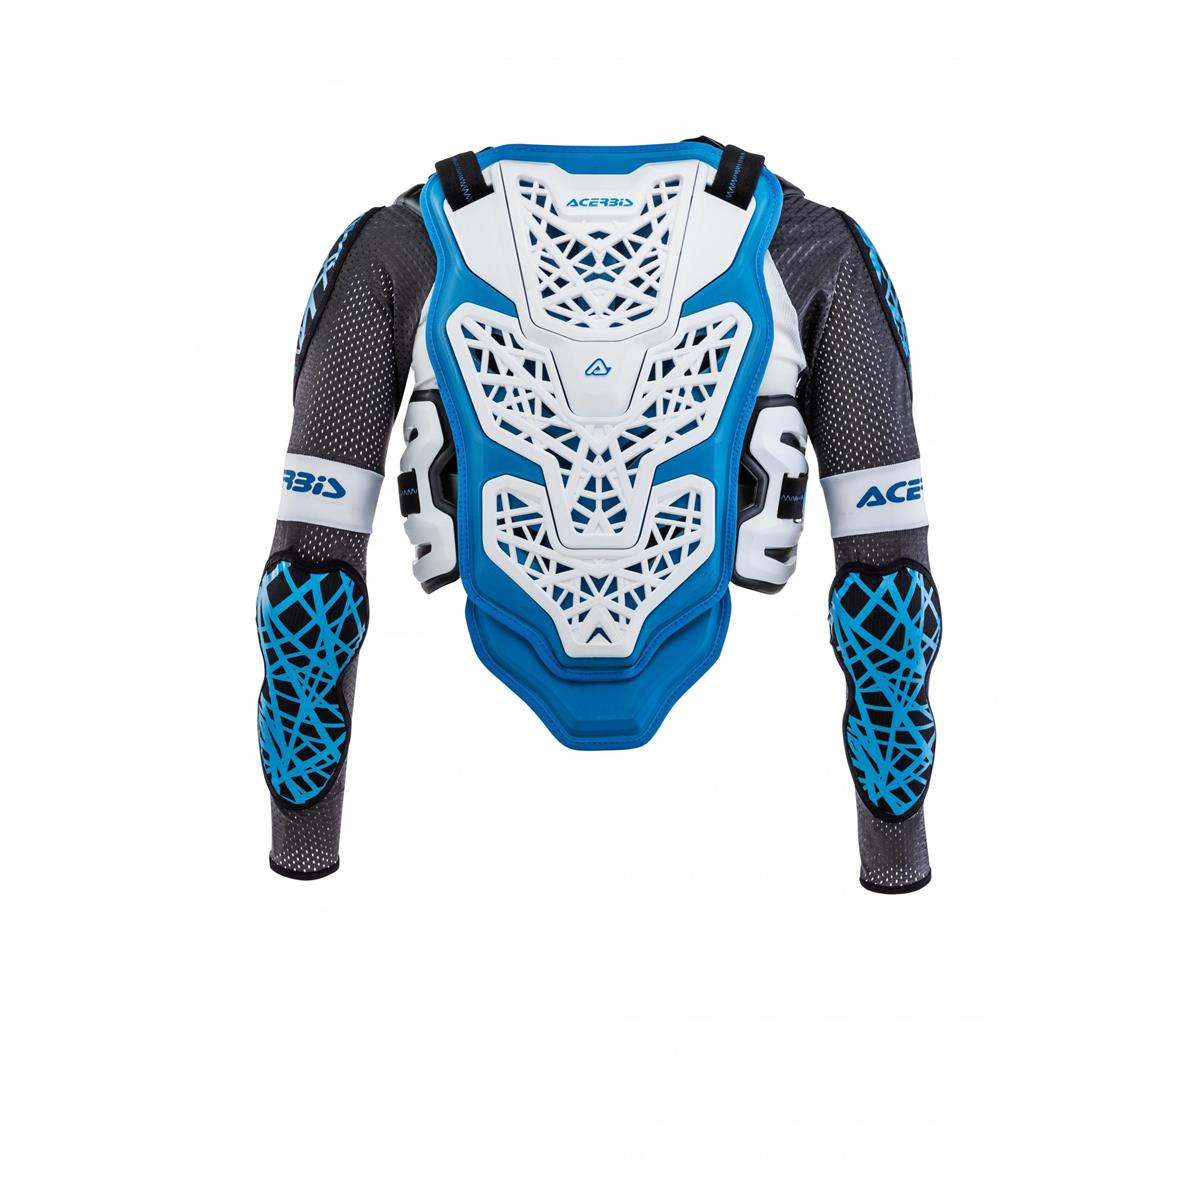 acerbis-protektionshemd-protection-shirt-galaxy-3